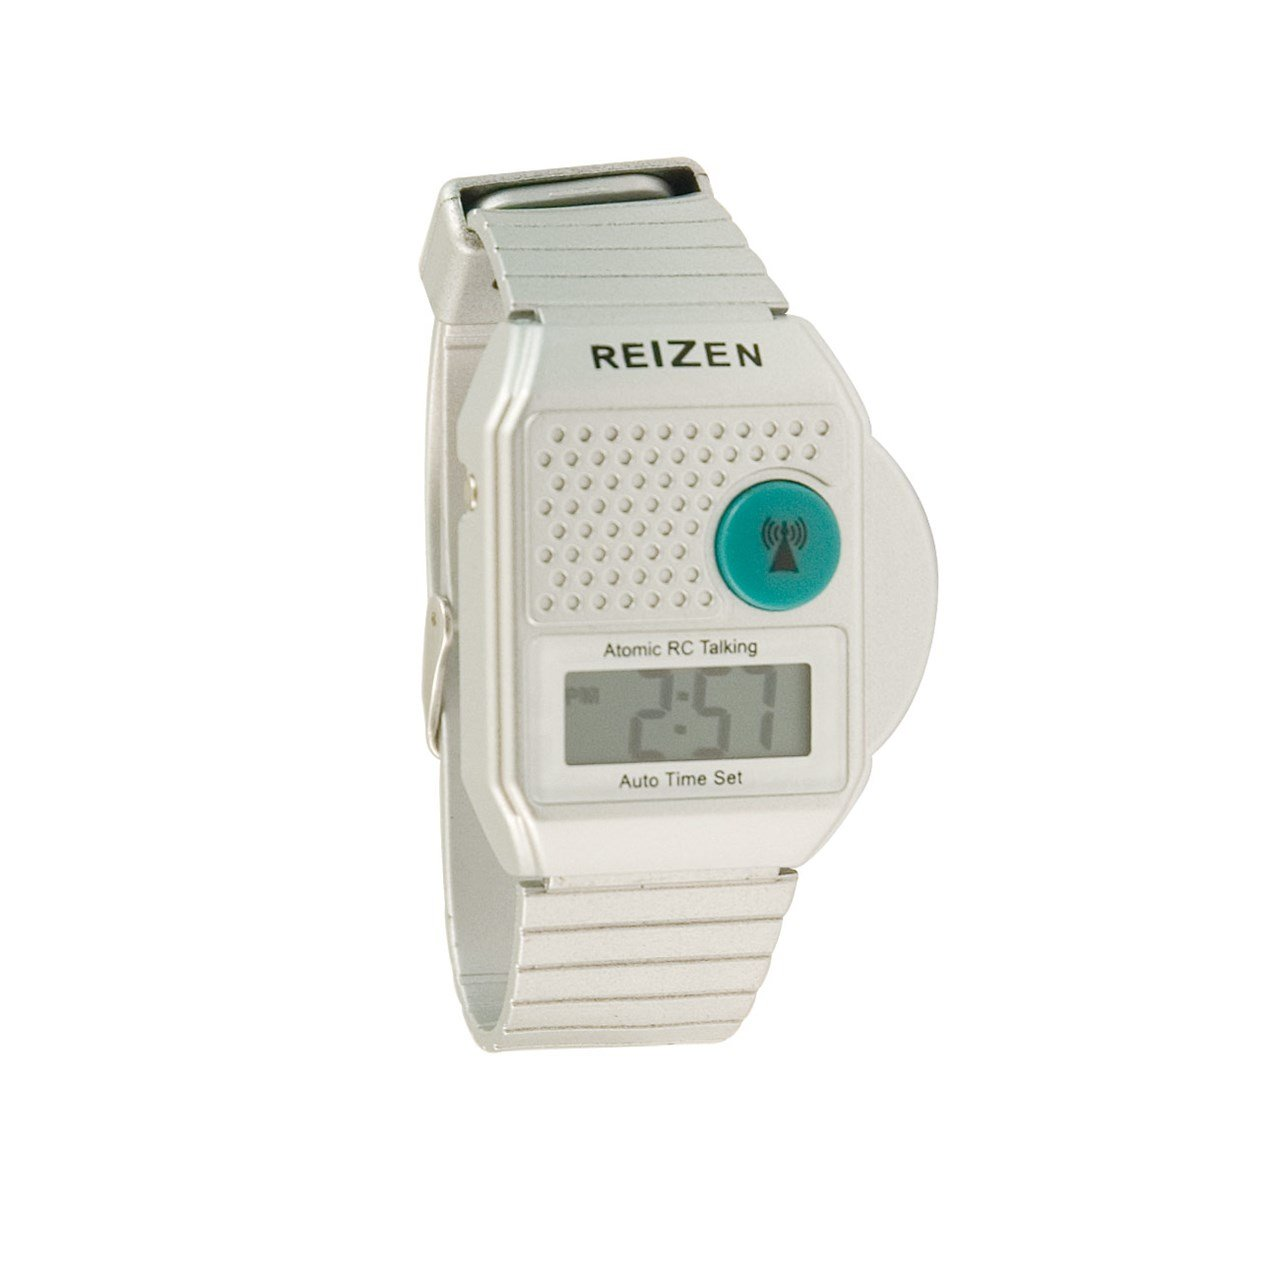 Square Digital Radio Controlled Talking Atomic Watch - Silver by Reizen